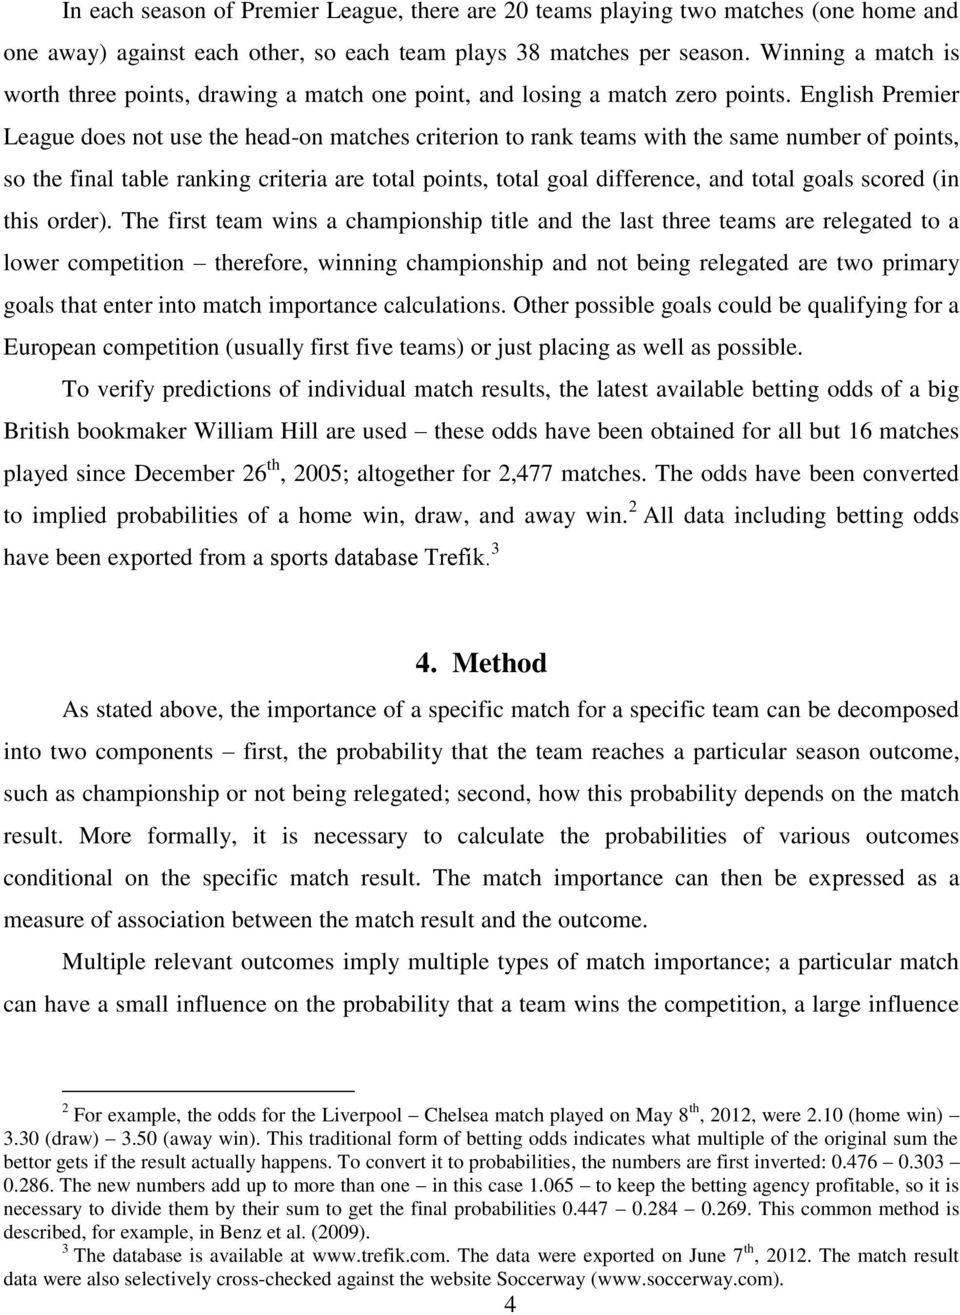 Using Monte Carlo simulation to calculate match importance: the case